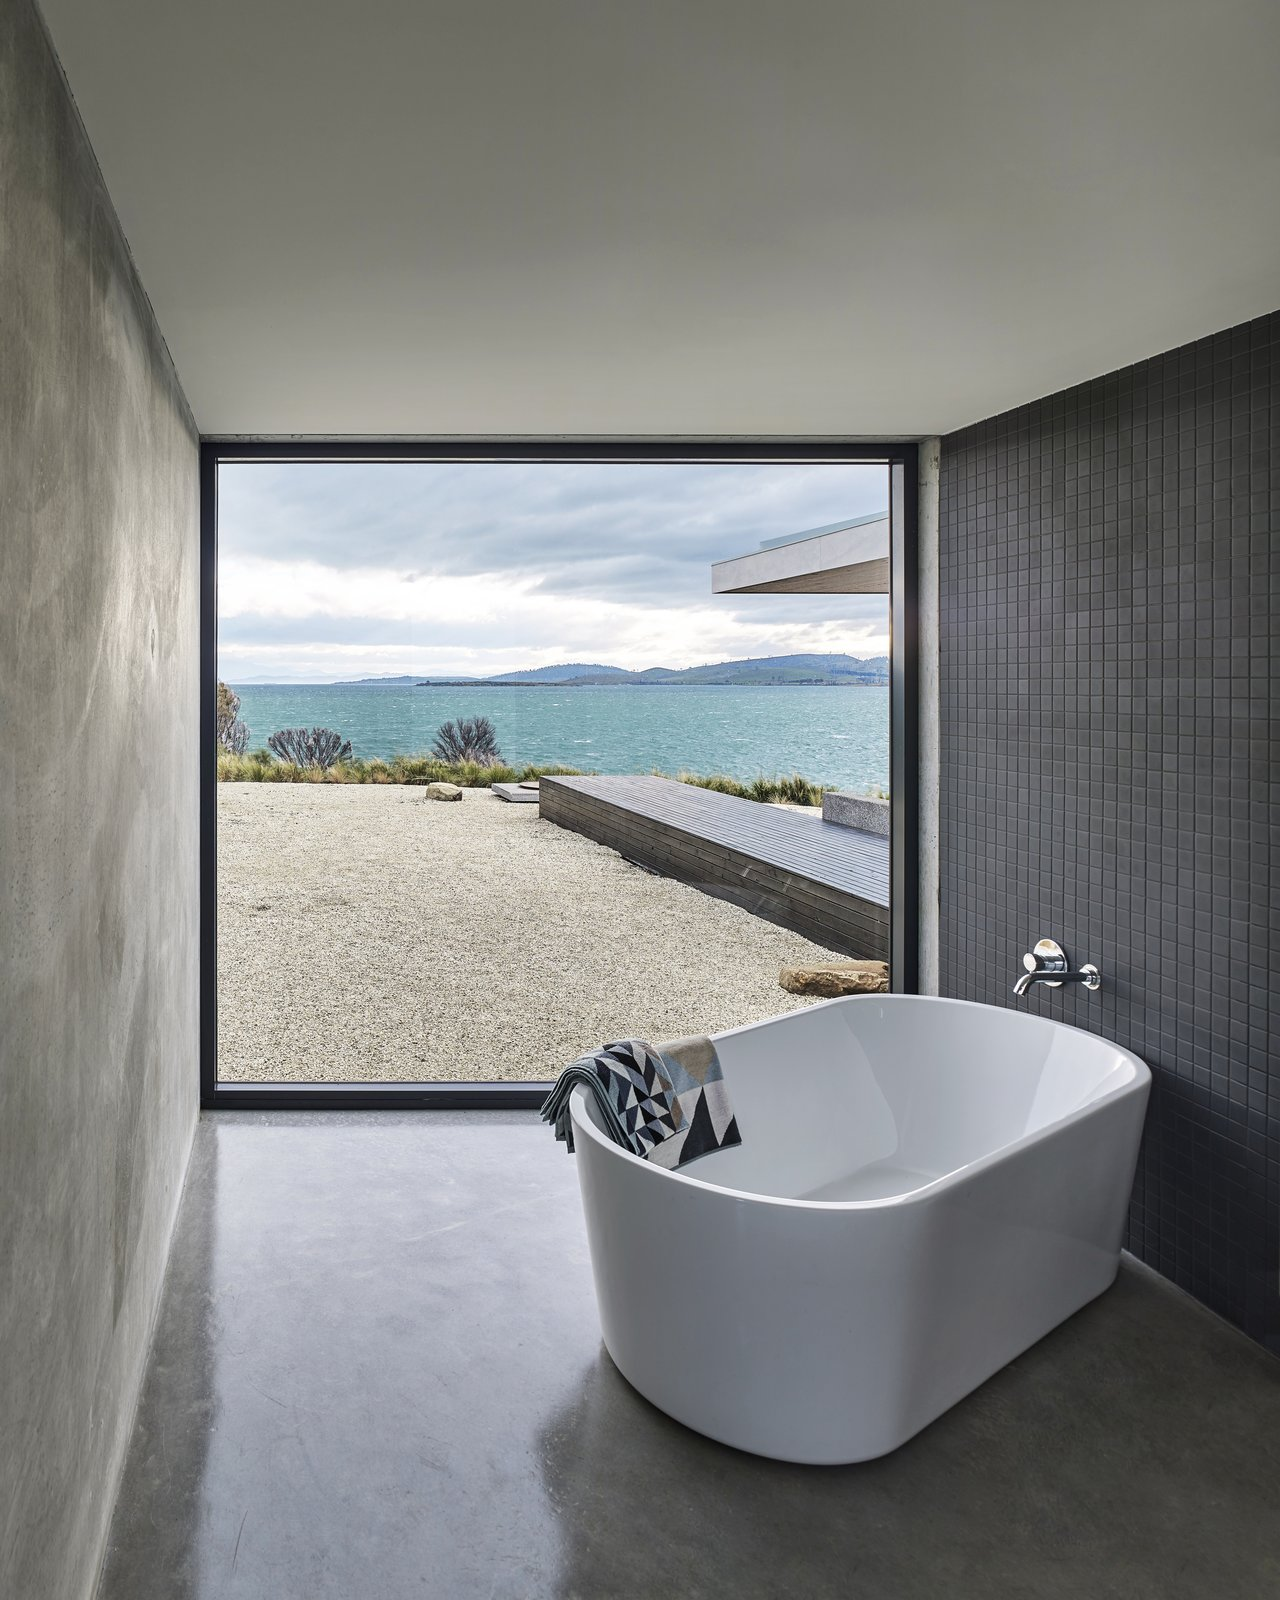 Bath Room, Concrete Floor, Freestanding Tub, and Soaking Tub The corner bathroom is defined by a freestanding Kado Lure 1760 tub and a powerful view of the bay.  Tasmania, Australia Dwell Magazine : September / October 2017  Photo 38 of 40 in 40 Modern Bathtubs That Soak In the View from A Semi-Modular Beach House in Tasmania Floats Over a Site That Survived a Bushfire